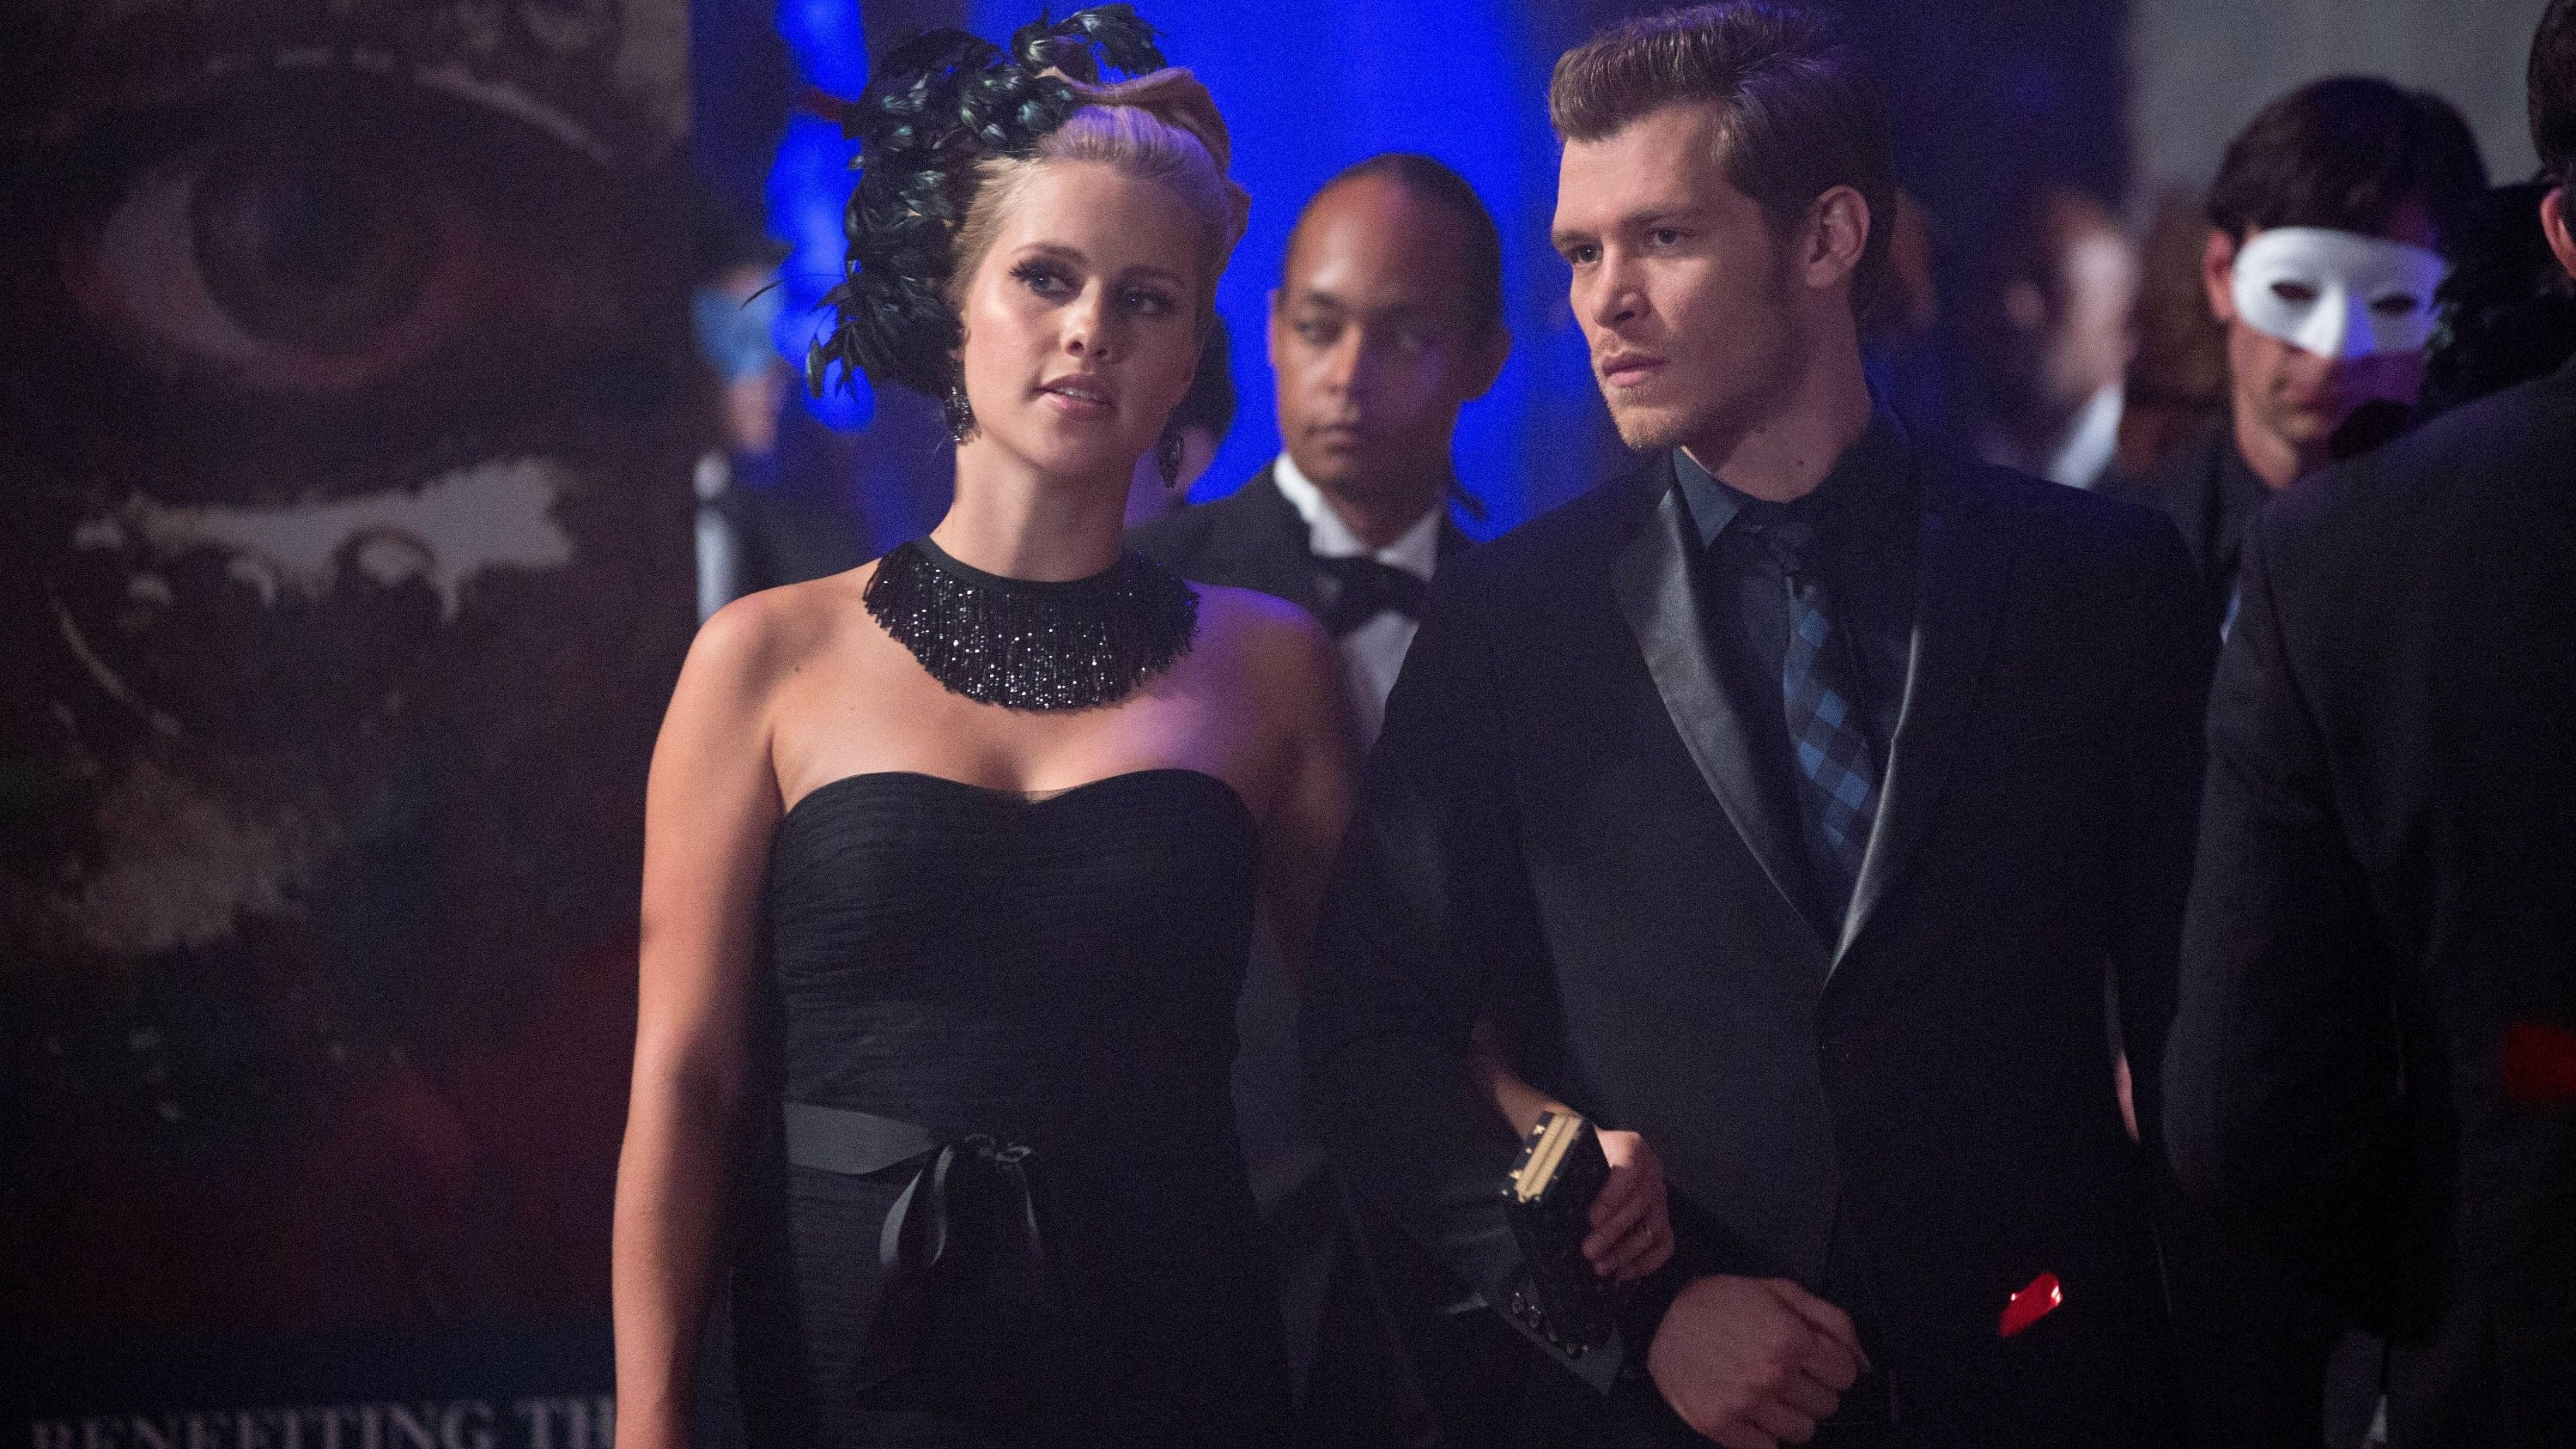 The Originals - Season 1 Episode 3 : Tangled Up in Blue